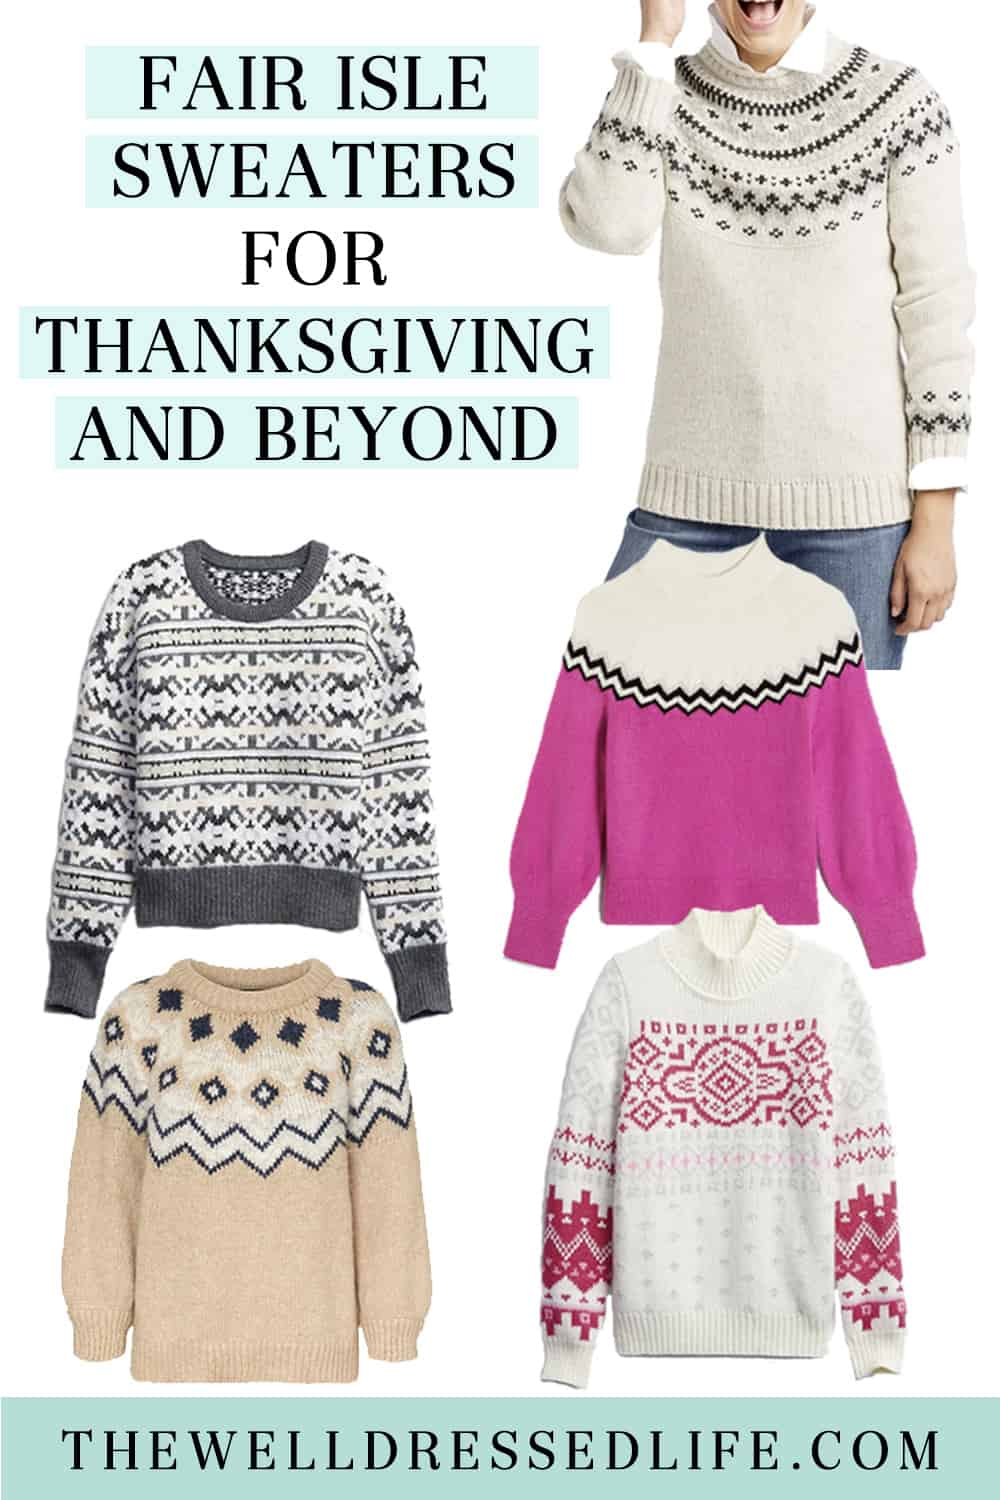 5 Fair Isle Sweaters for Thanksgiving and Beyond